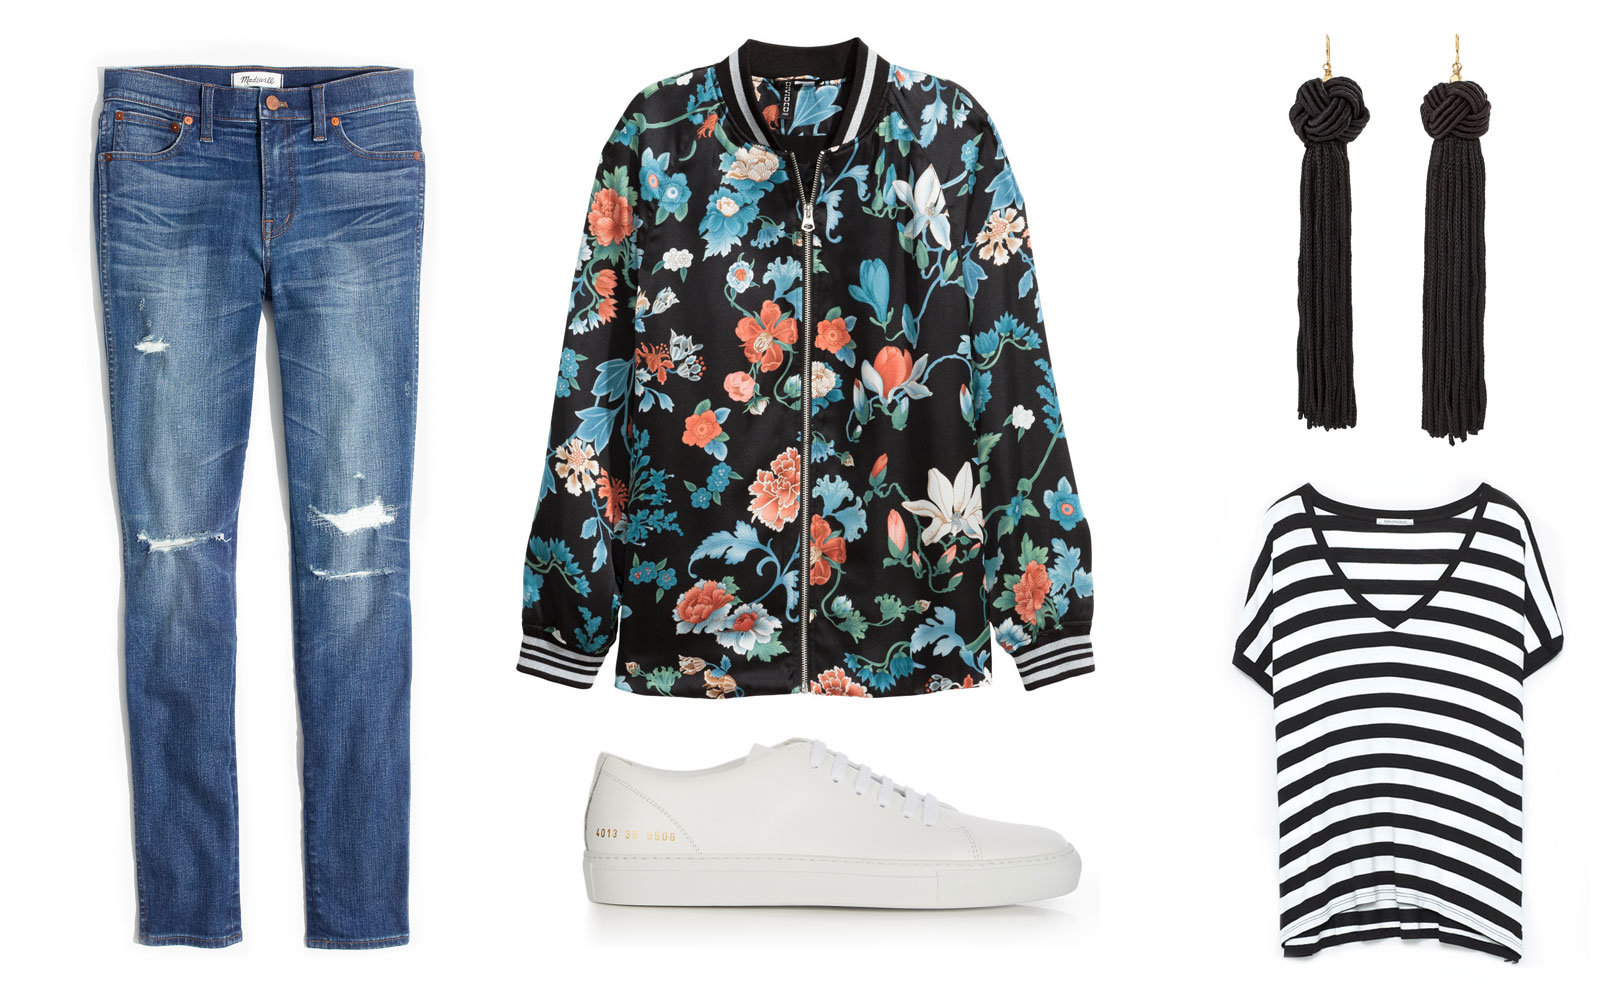 Comfy Travel Outfit Ideas